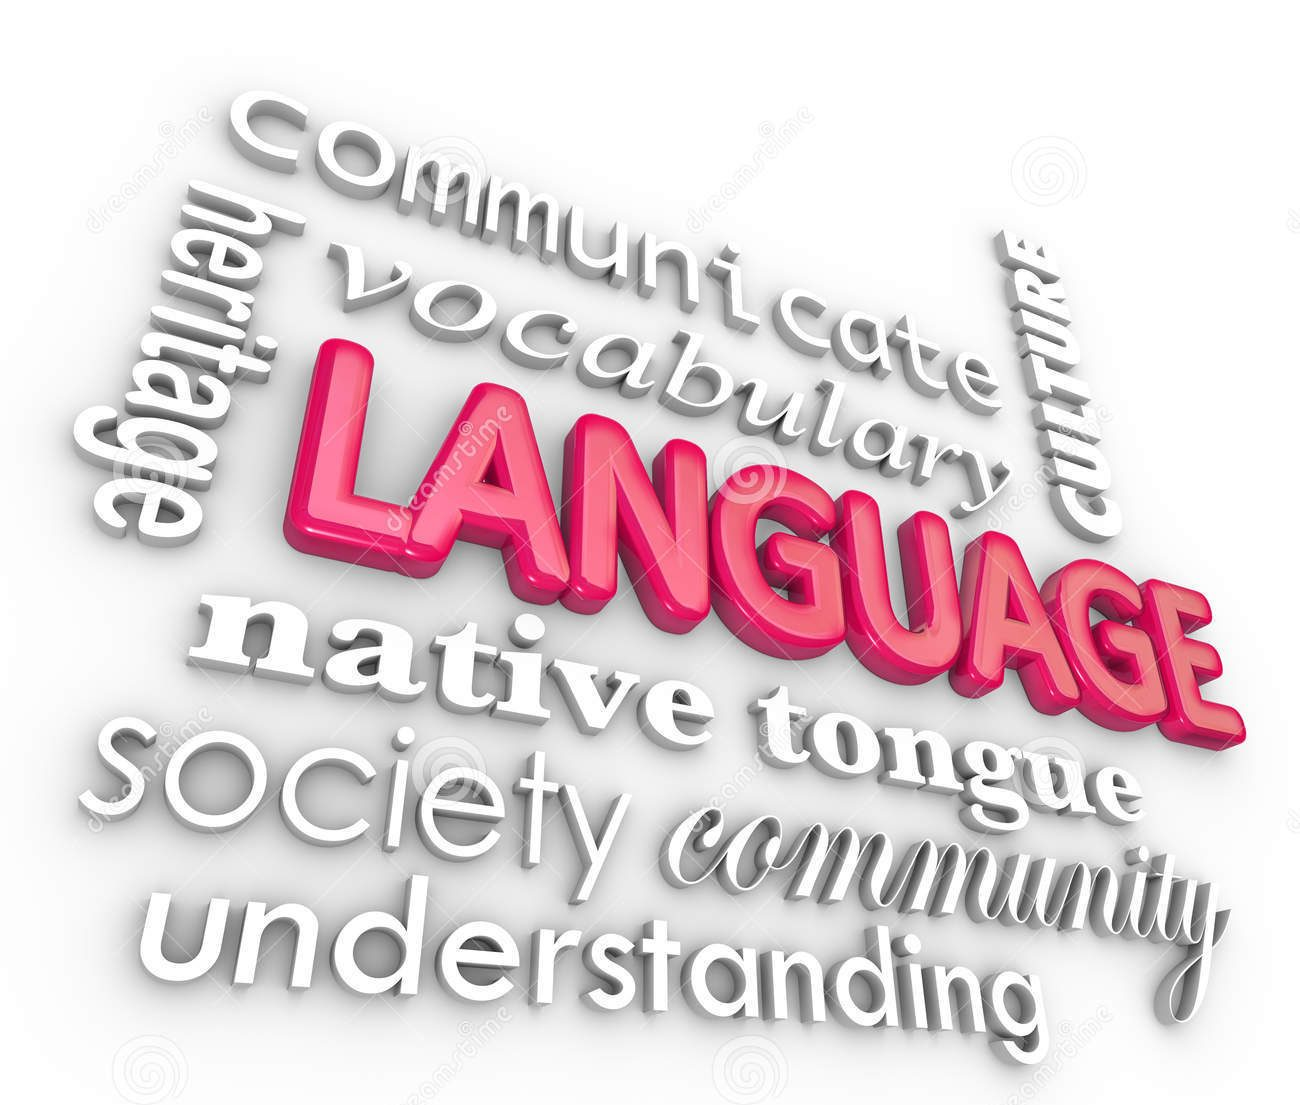 Language-Linguistic-Society-1